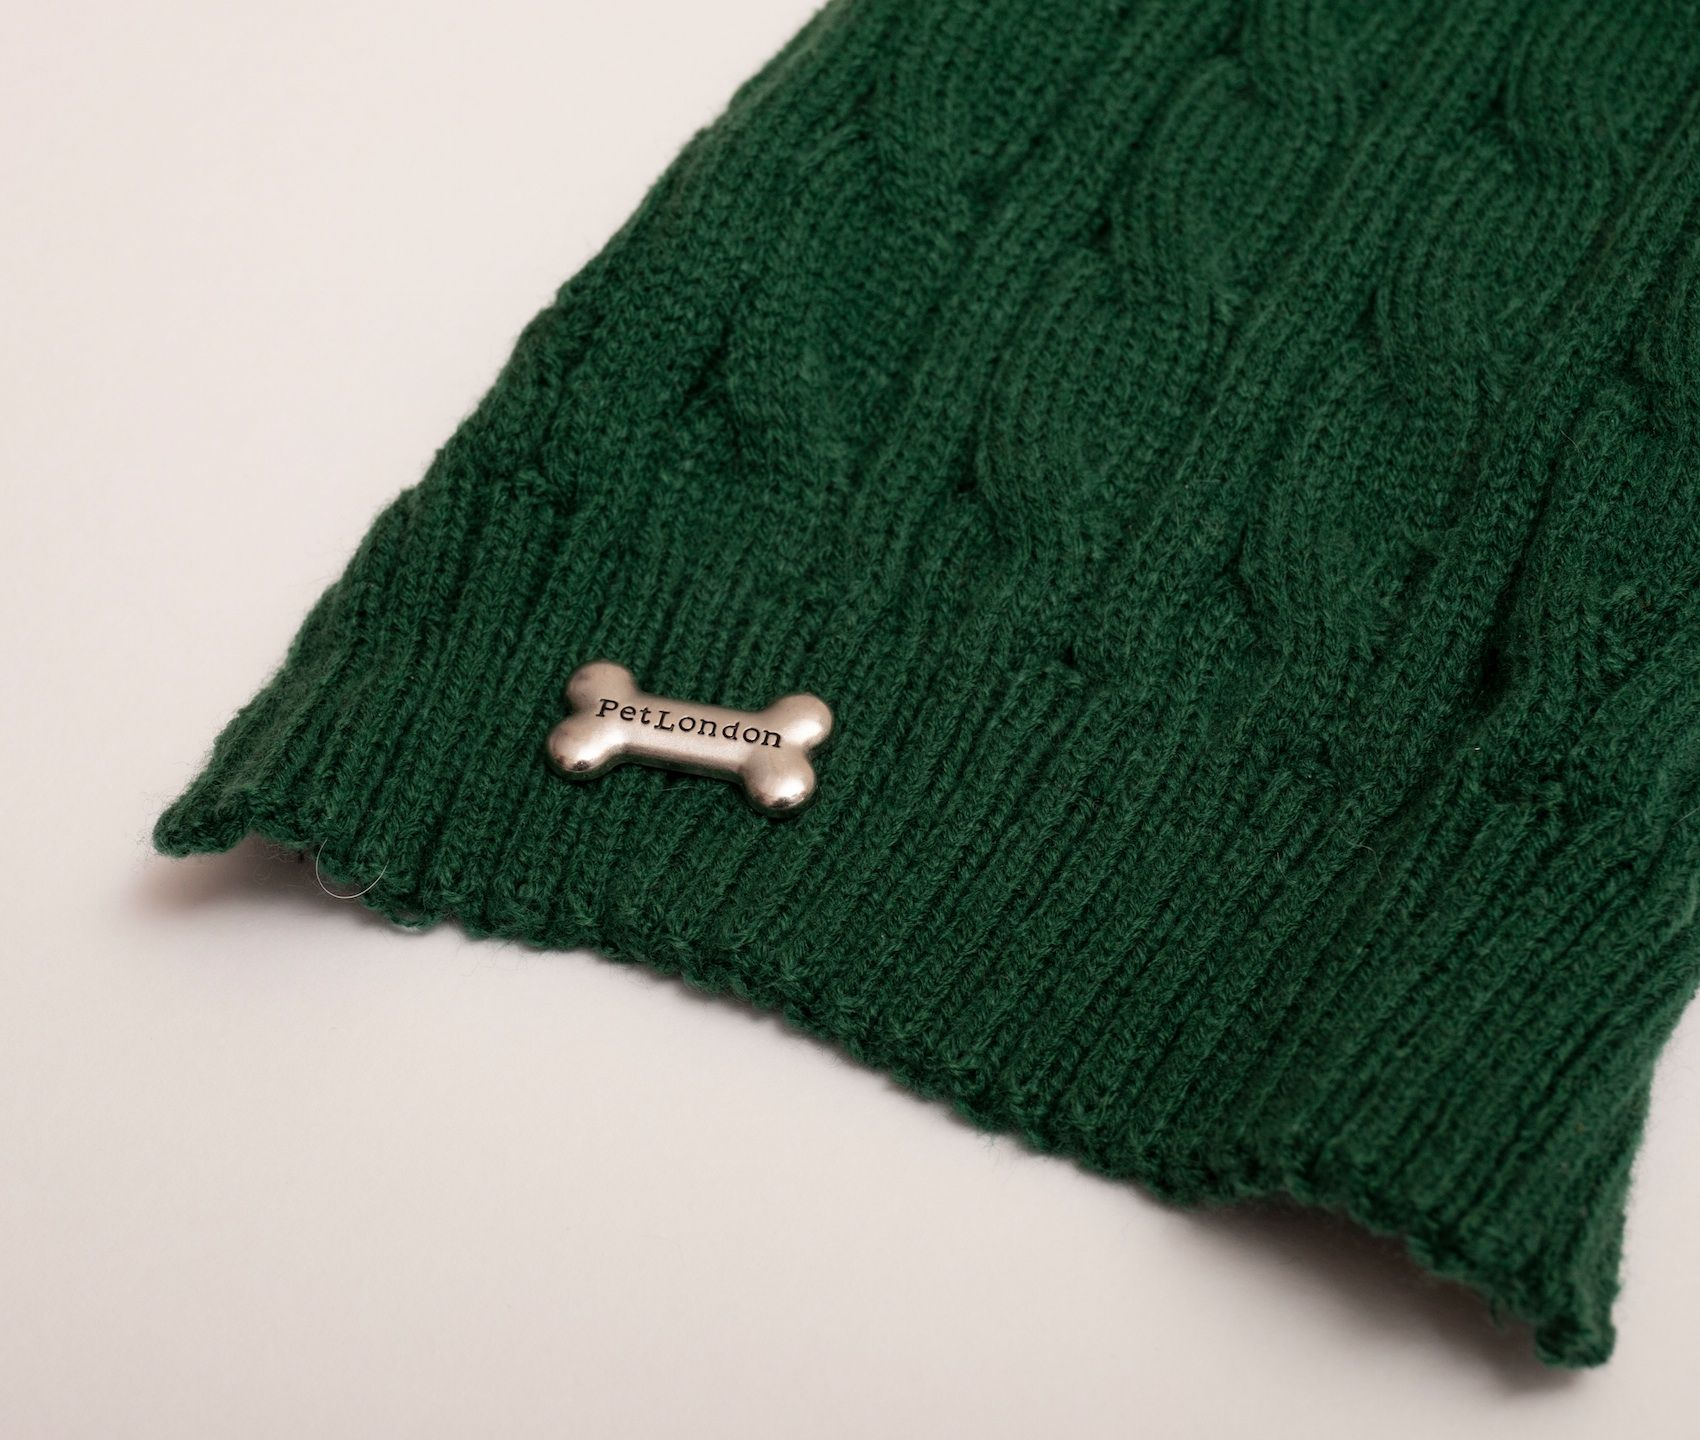 Bottle green Cable Knit Jumper